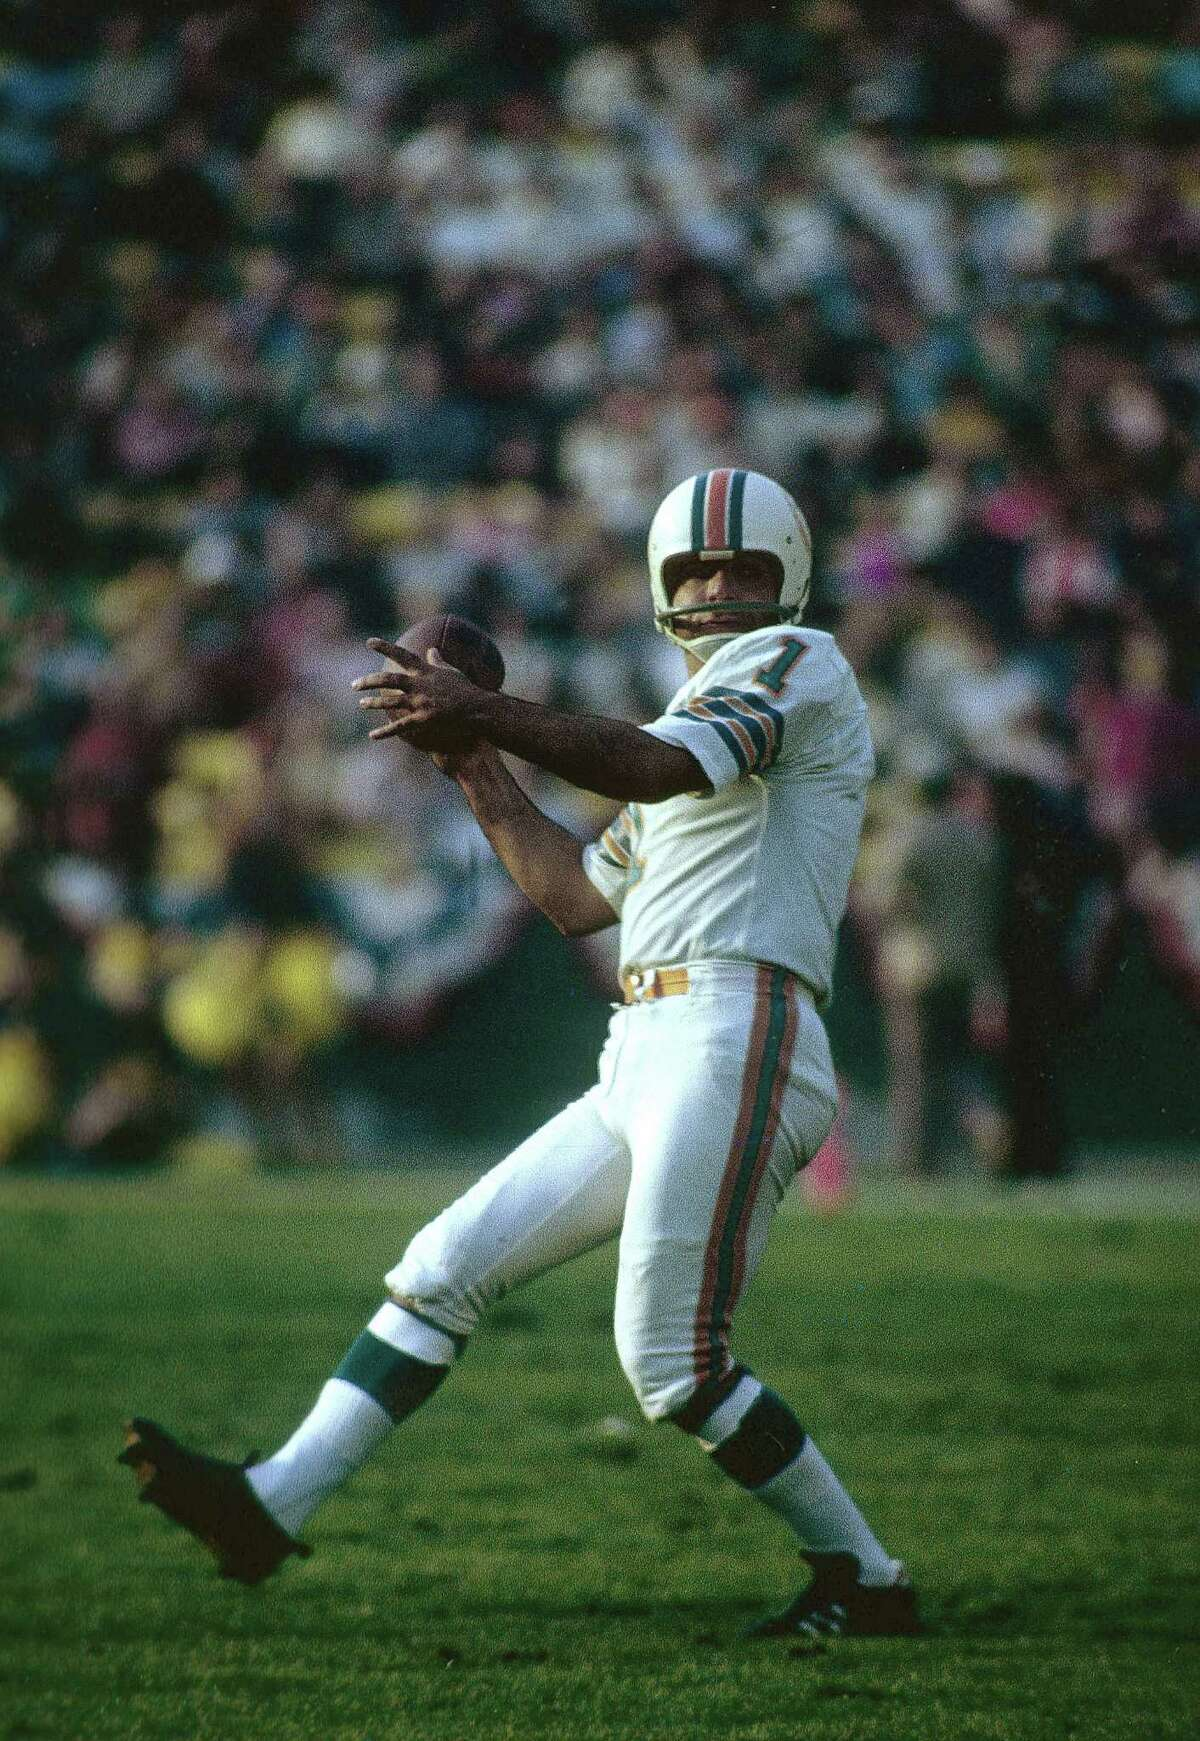 Garo Yepremian #1 looks to pass the ball after a botched field goal attempt against the Washington Redskins during Super Bowl VII at the Memorial Coliseum in Los Angeles, California, January 14, 1973. The Dolphins won the Super Bowl 14-7. (Photo by Focus on Sport/Getty Images)